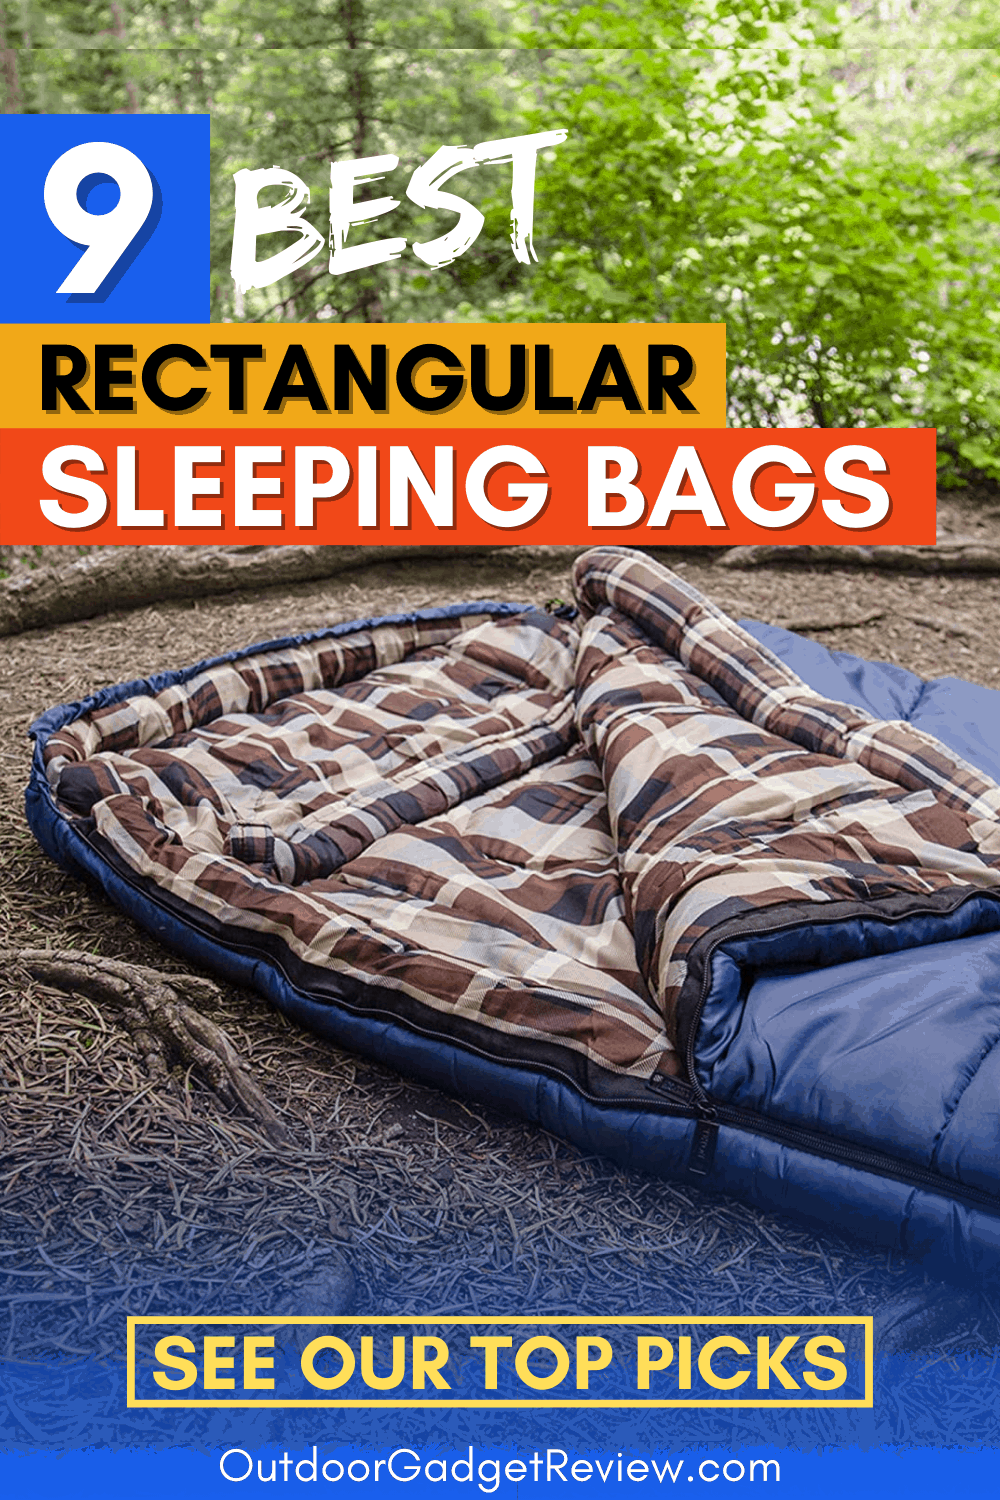 The Best Rectangular Sleeping Bags - Pin